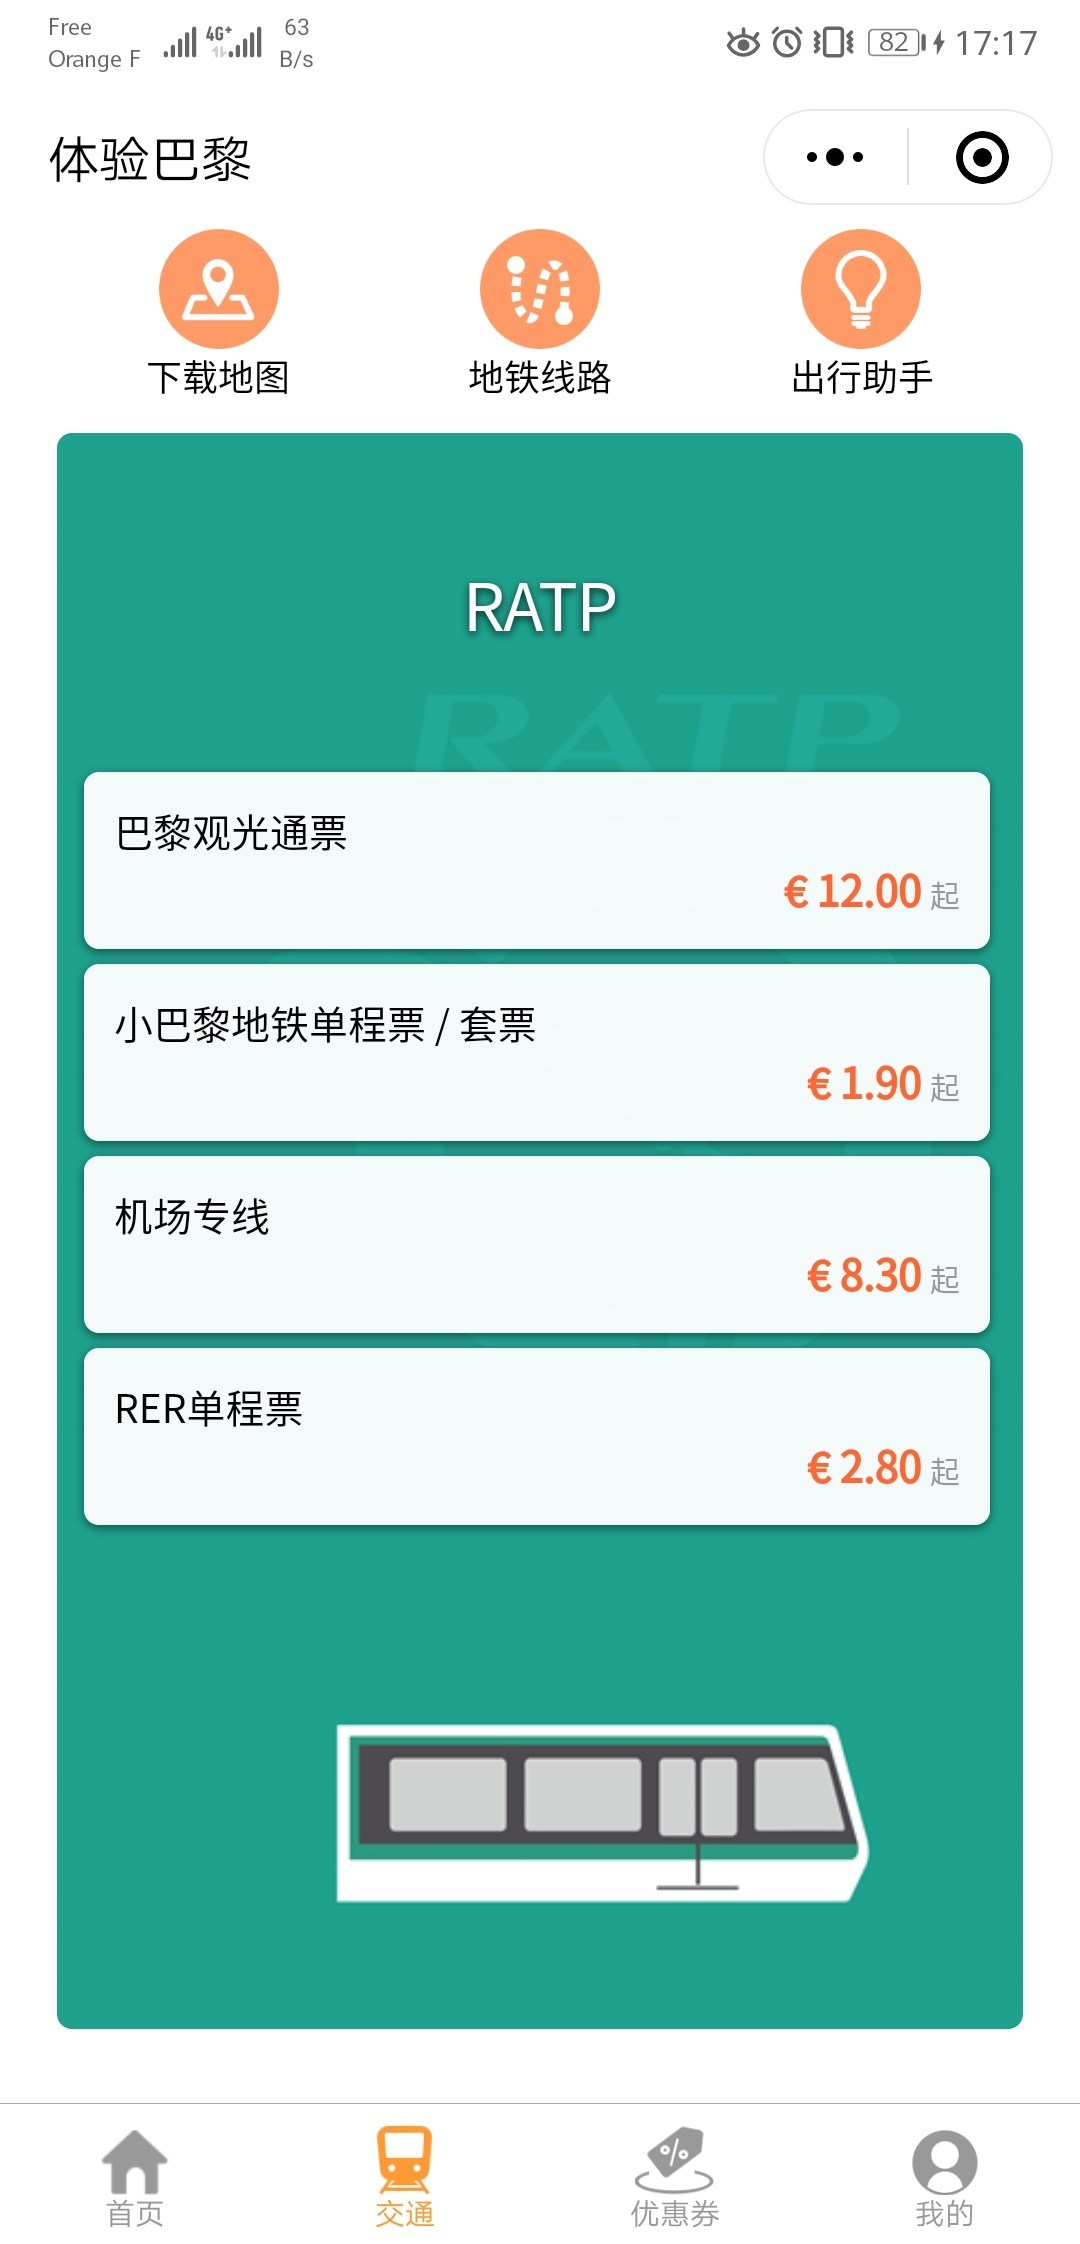 RATP WeChat Mini-Program Development - Full Service Digital Agency China Travel digital agency - Europass